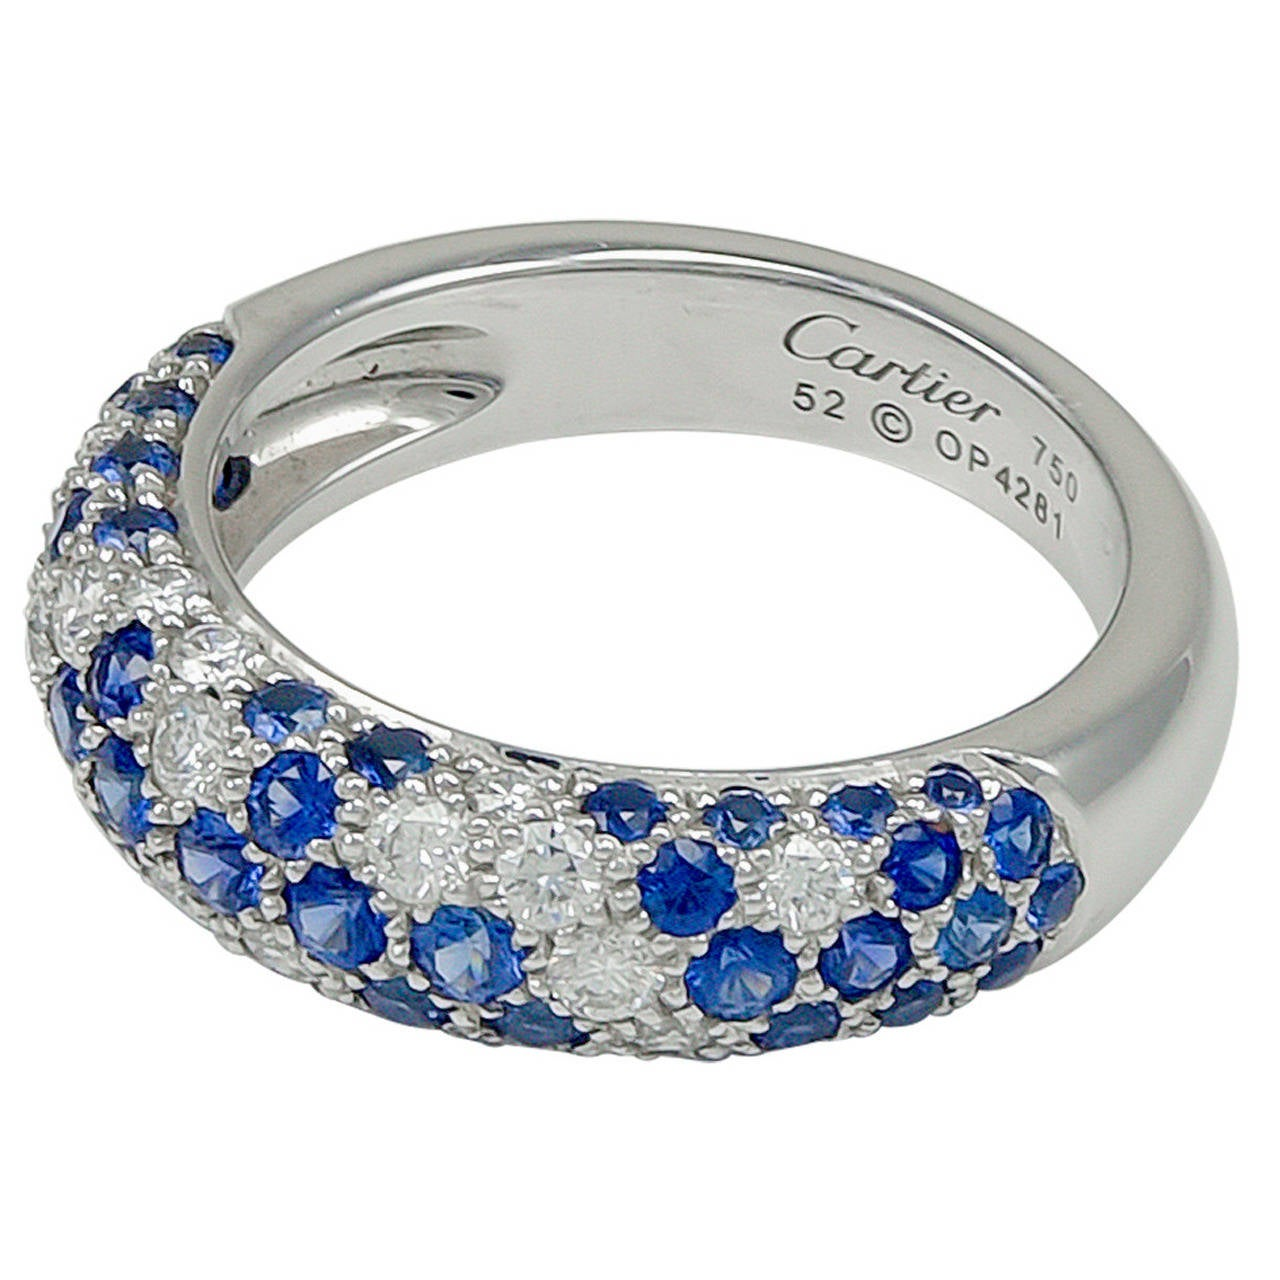 Cartier Diamond Sapphire Gold Band Ring